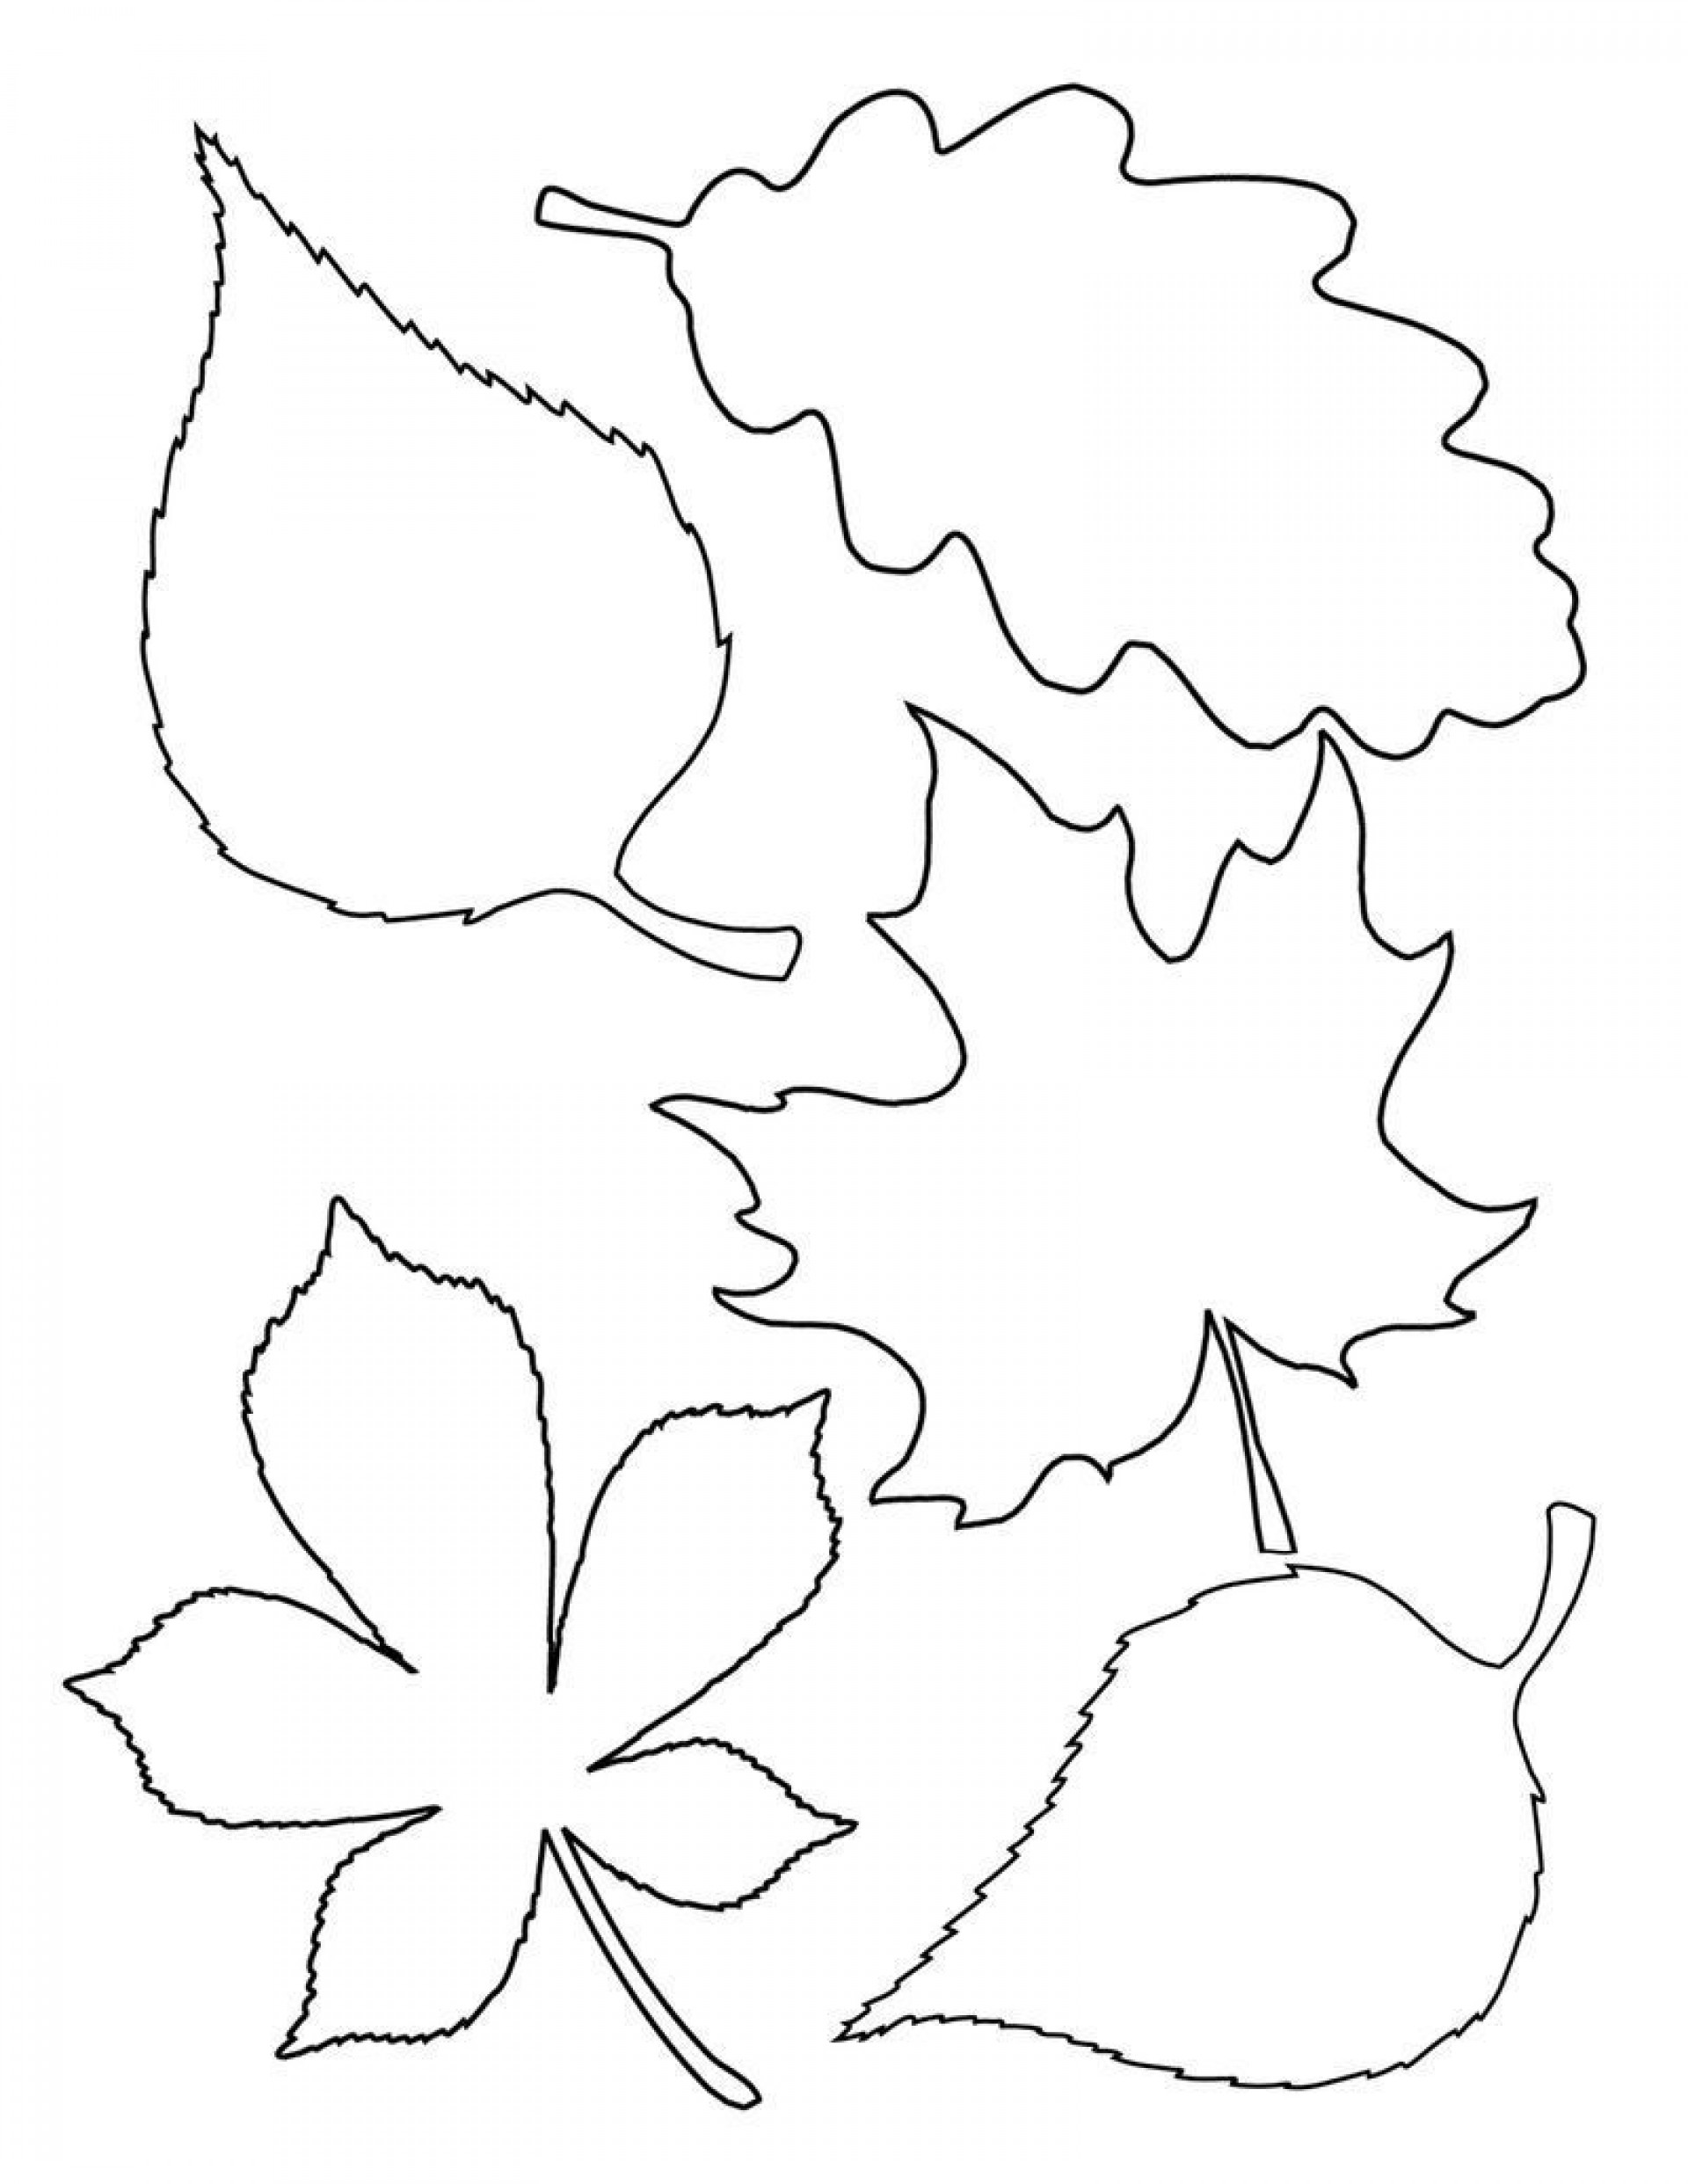 004 Astounding Leaf Template With Line Design  Fall Printable Blank1920